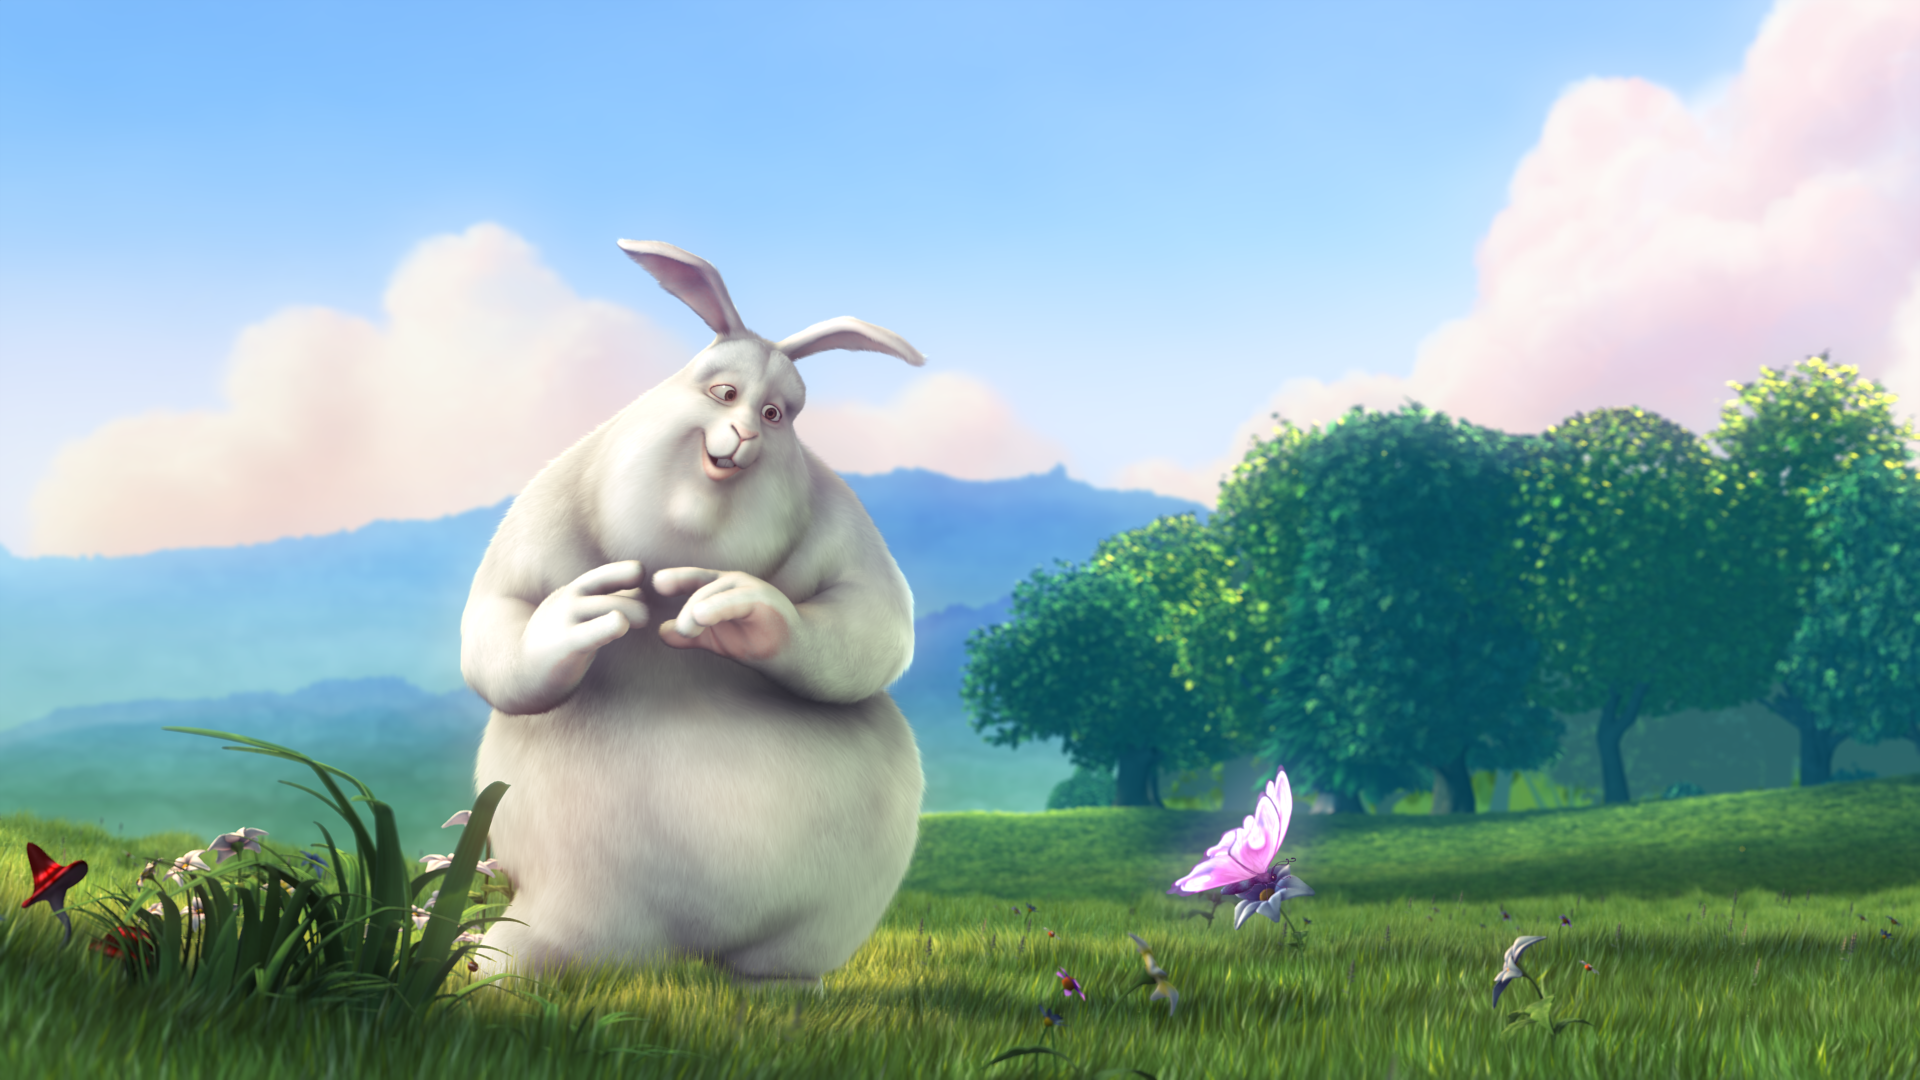 Big Buck Bunny Movie Frame